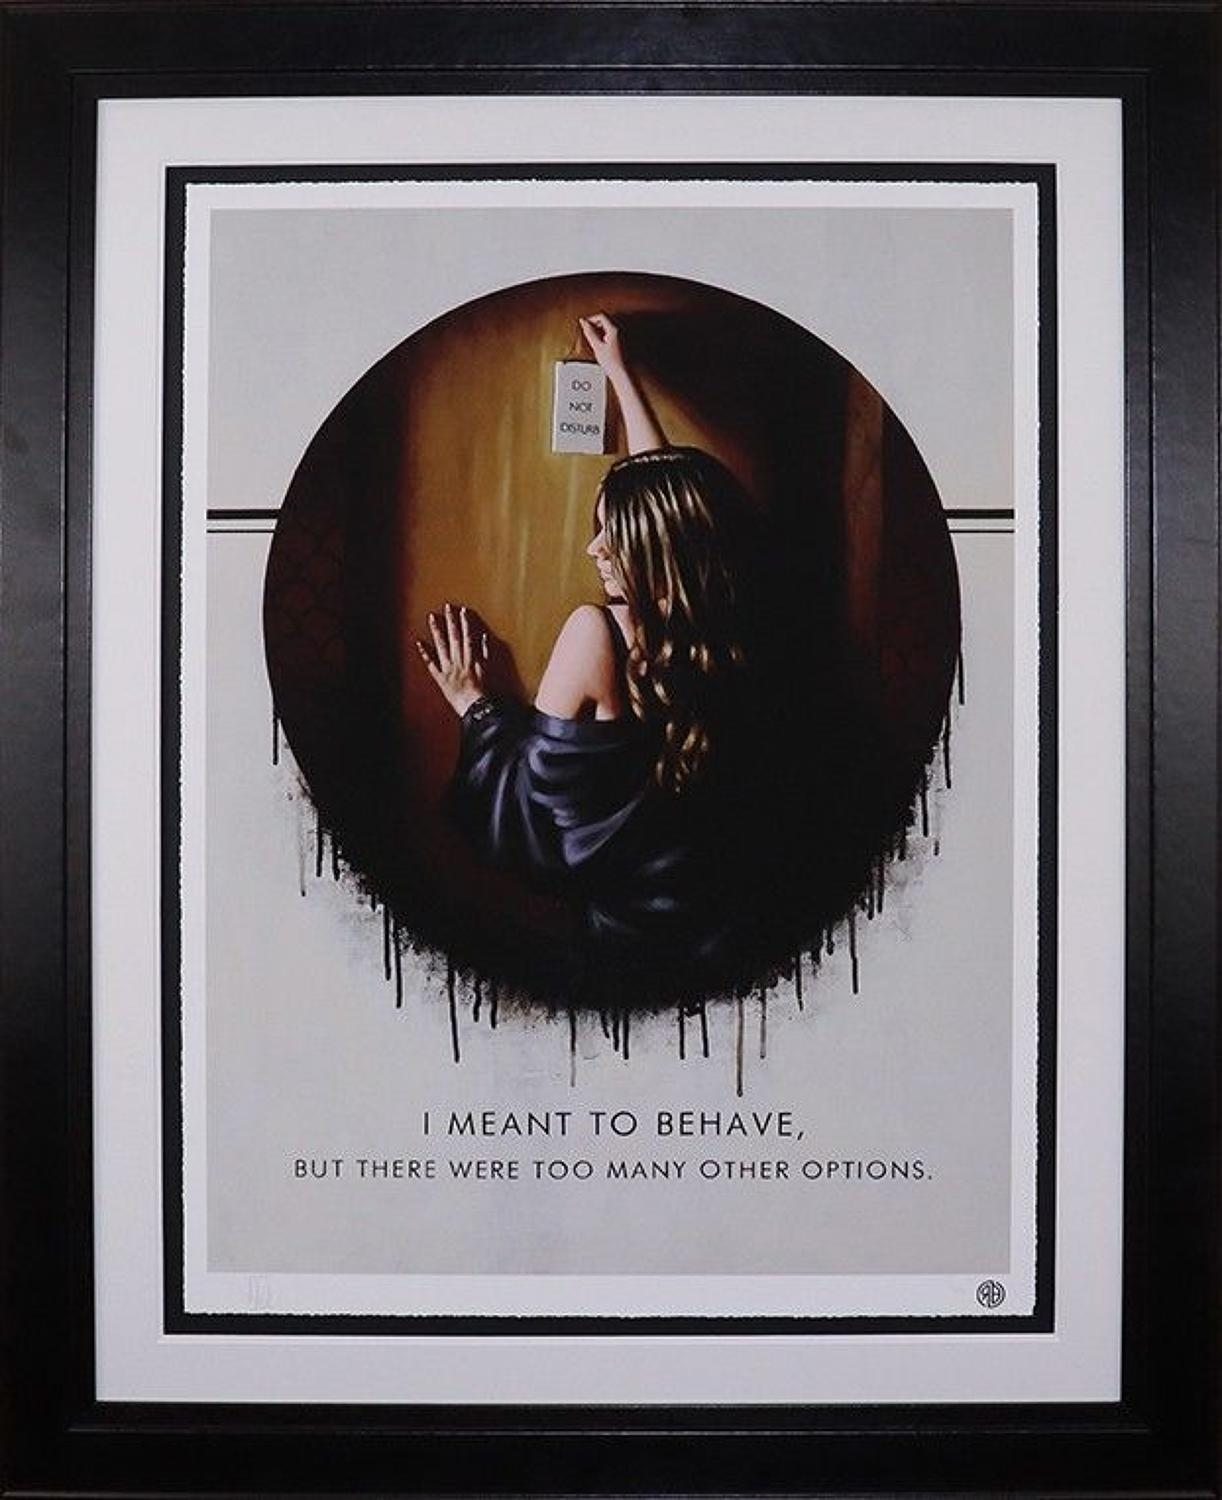 I Meant To Behave Framed Paper Art Print by Richard Blunt